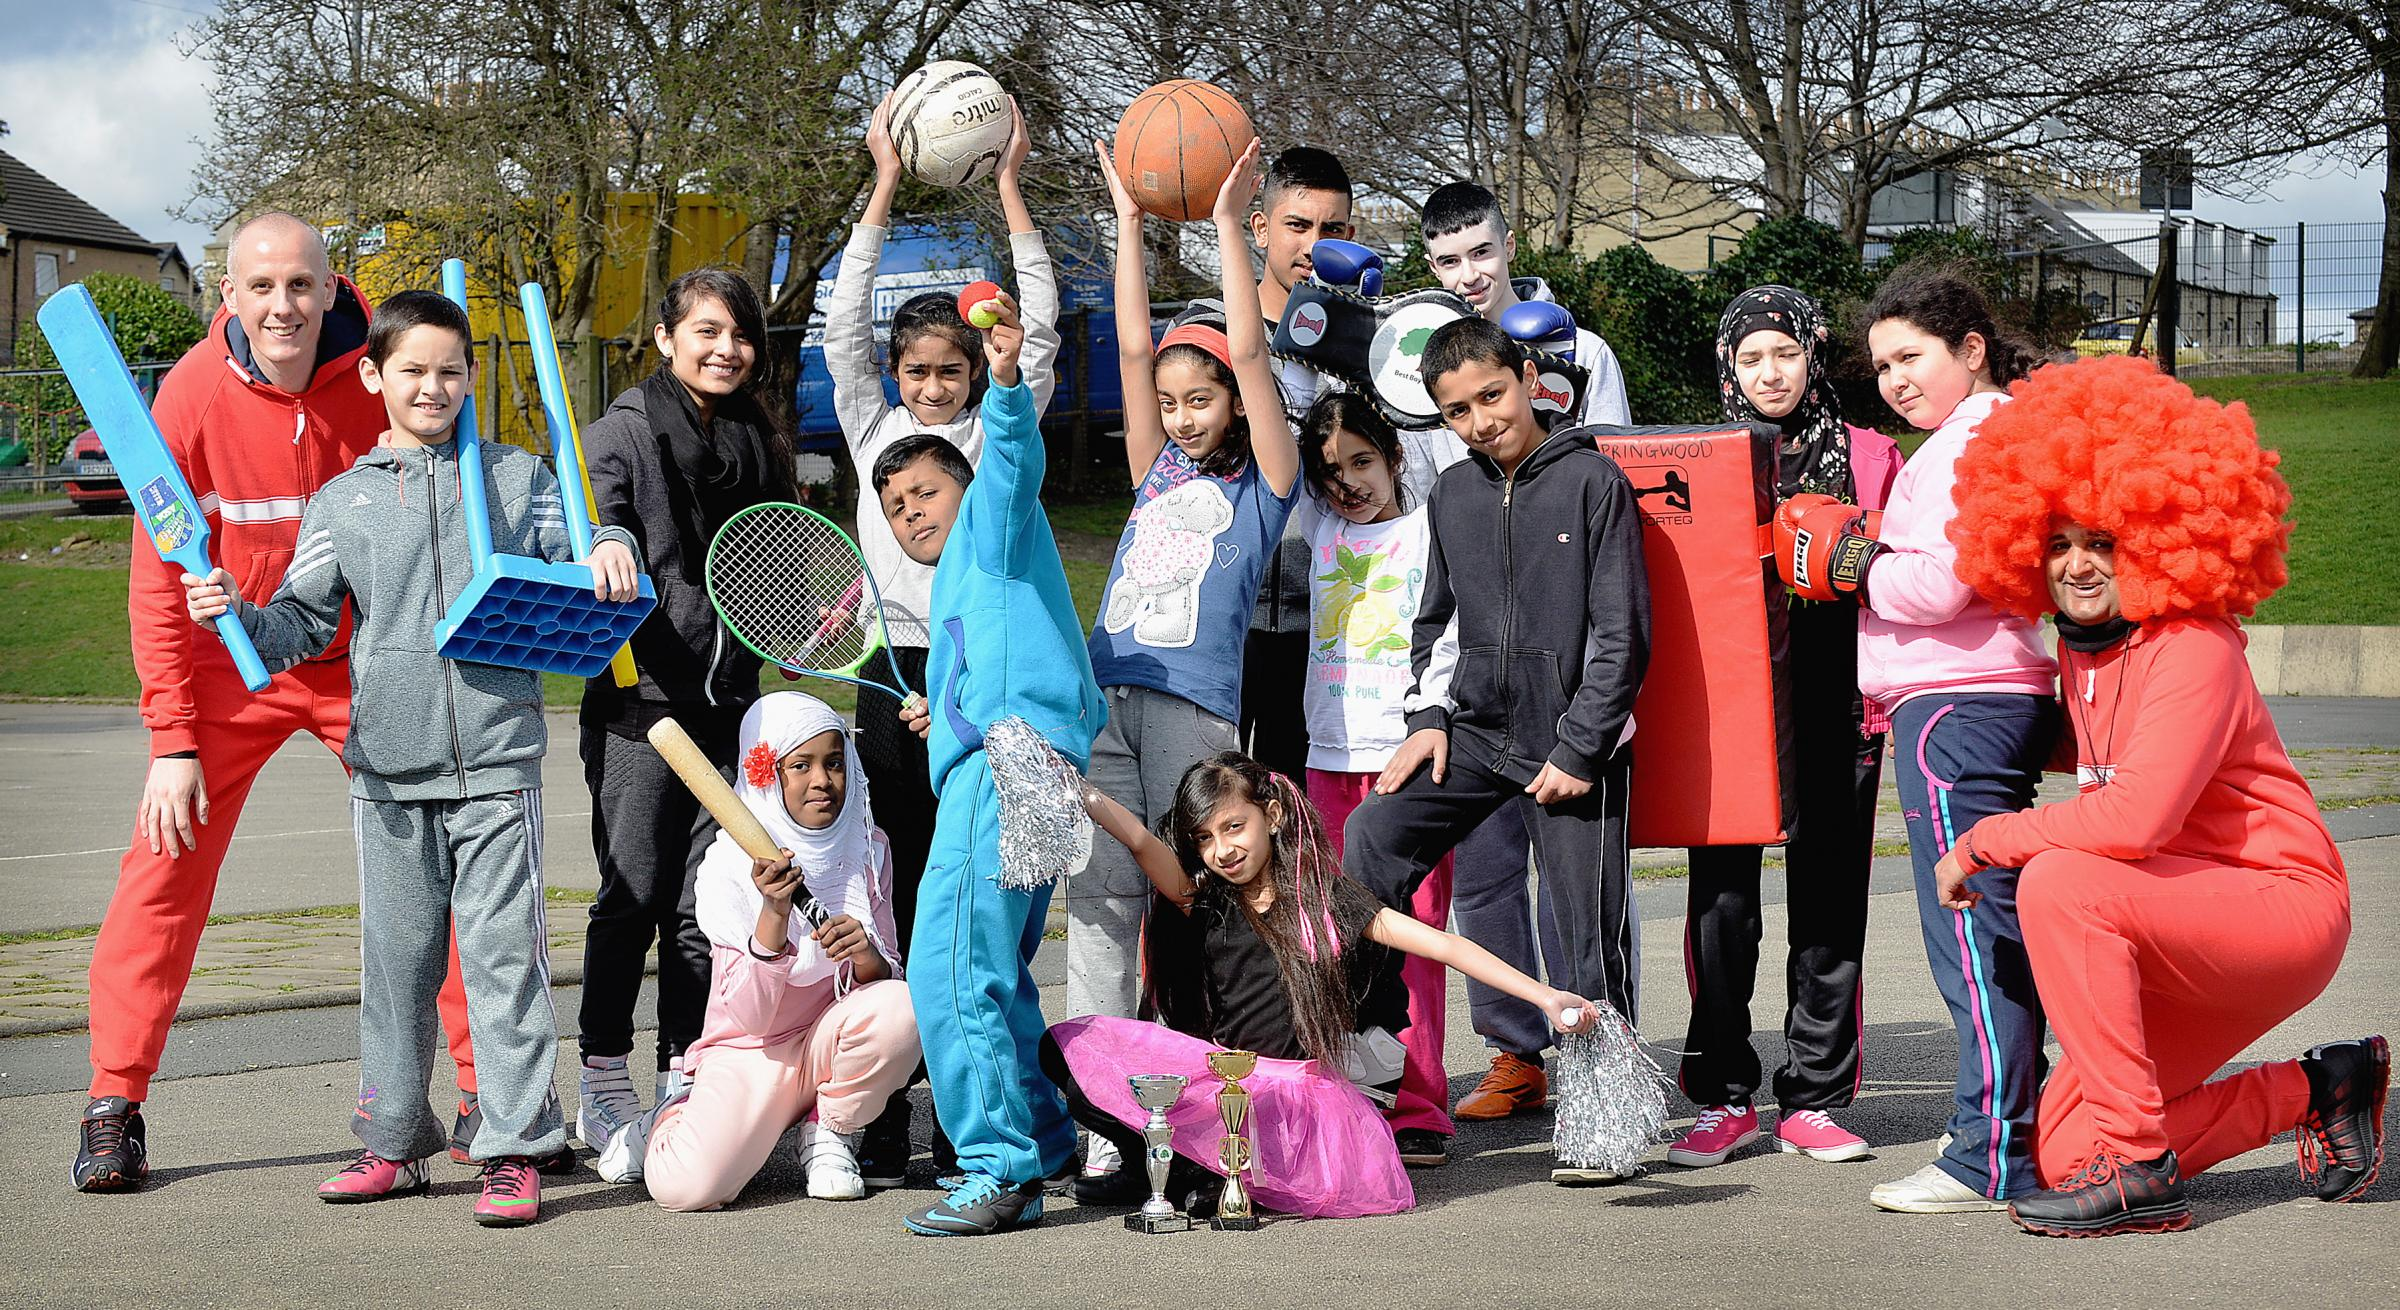 Springwood primary school have been taking part in Sports Relief and exhausting their teachers